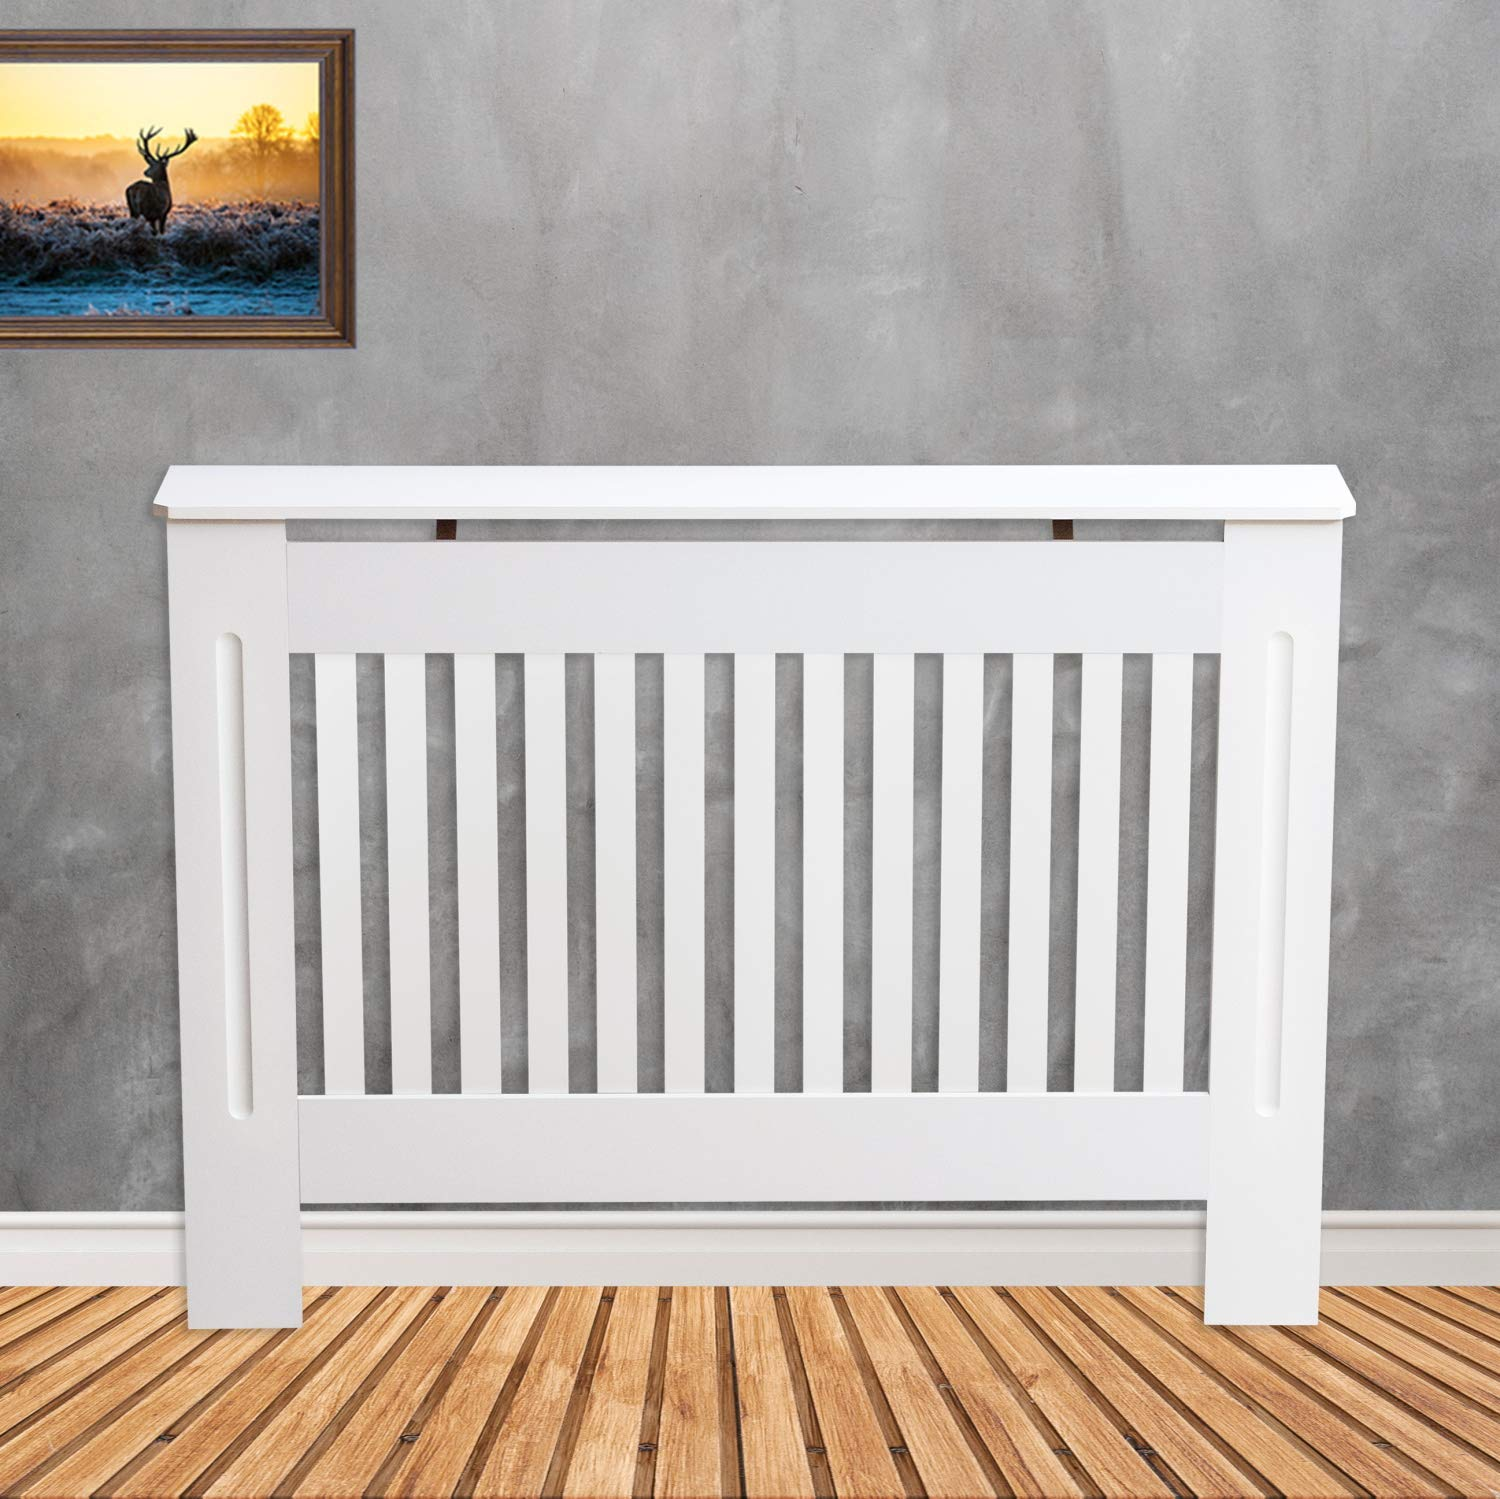 TANBURO Traditional Matte Painted Radiator Cover Cabinet Vertical Slatted White E1 MDF Medium 112 x 19 x 81.5cm